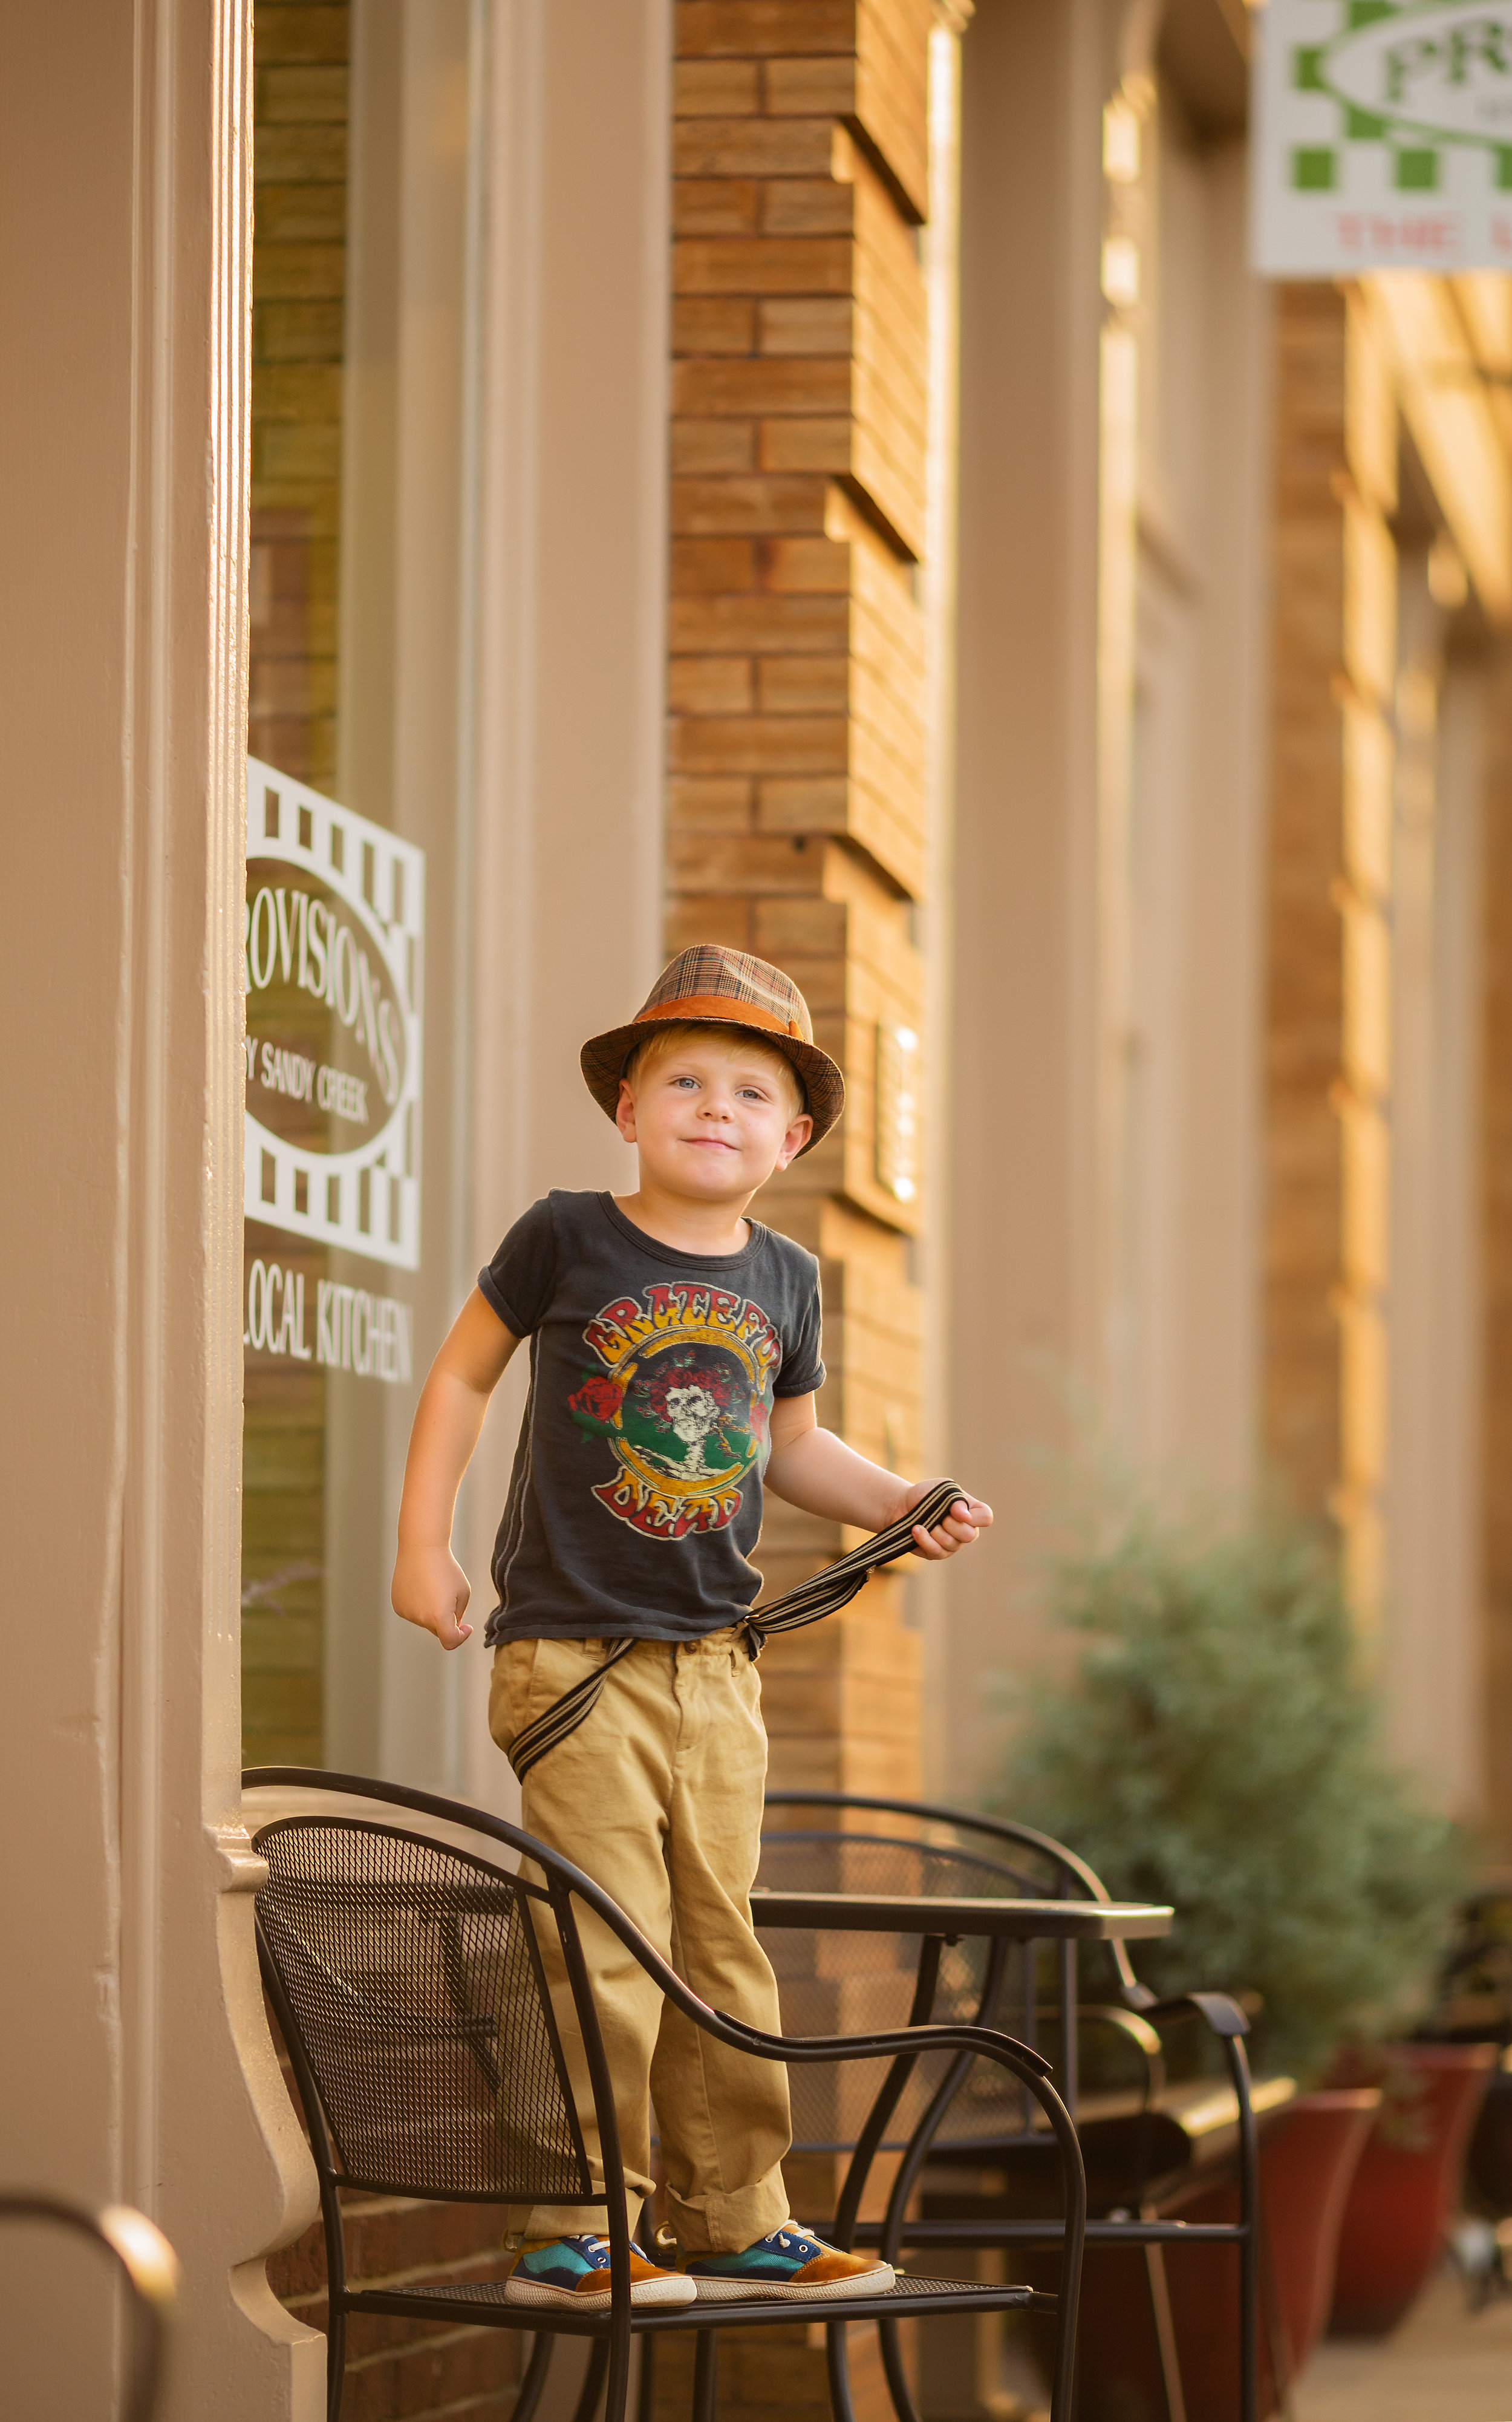 Waxhaw NC Photographer | Waxhaw NC Photography | Childrens Photography | A McHenry Photography